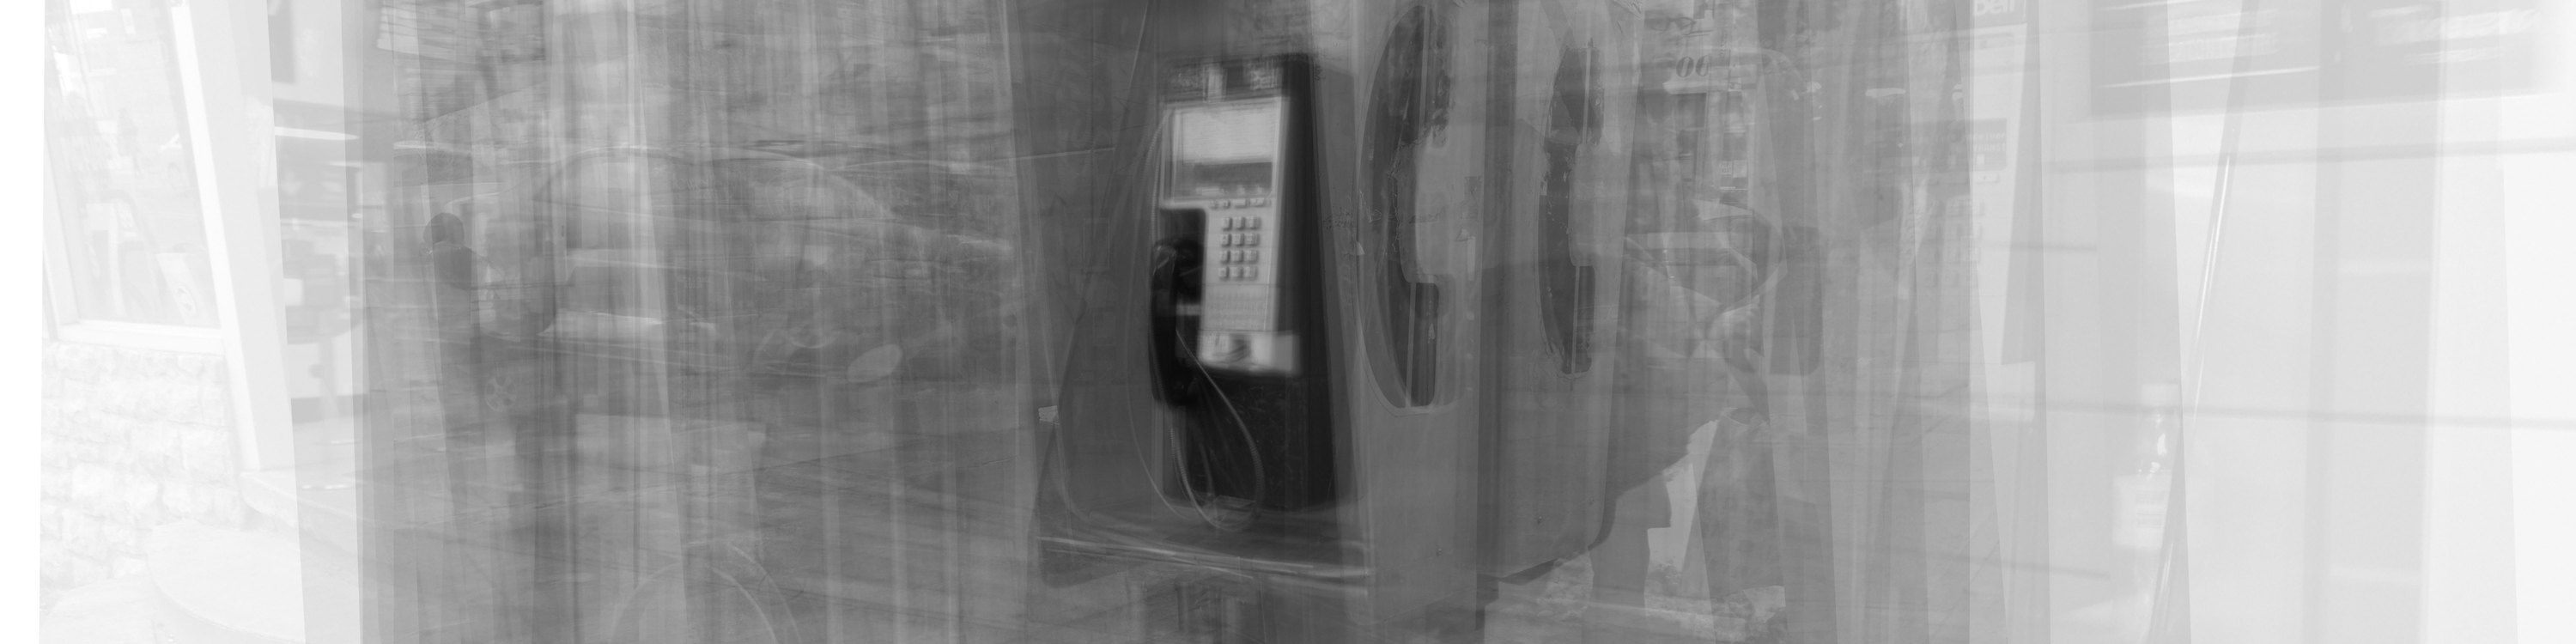 <div class='title'>           pay phone banner         </div>